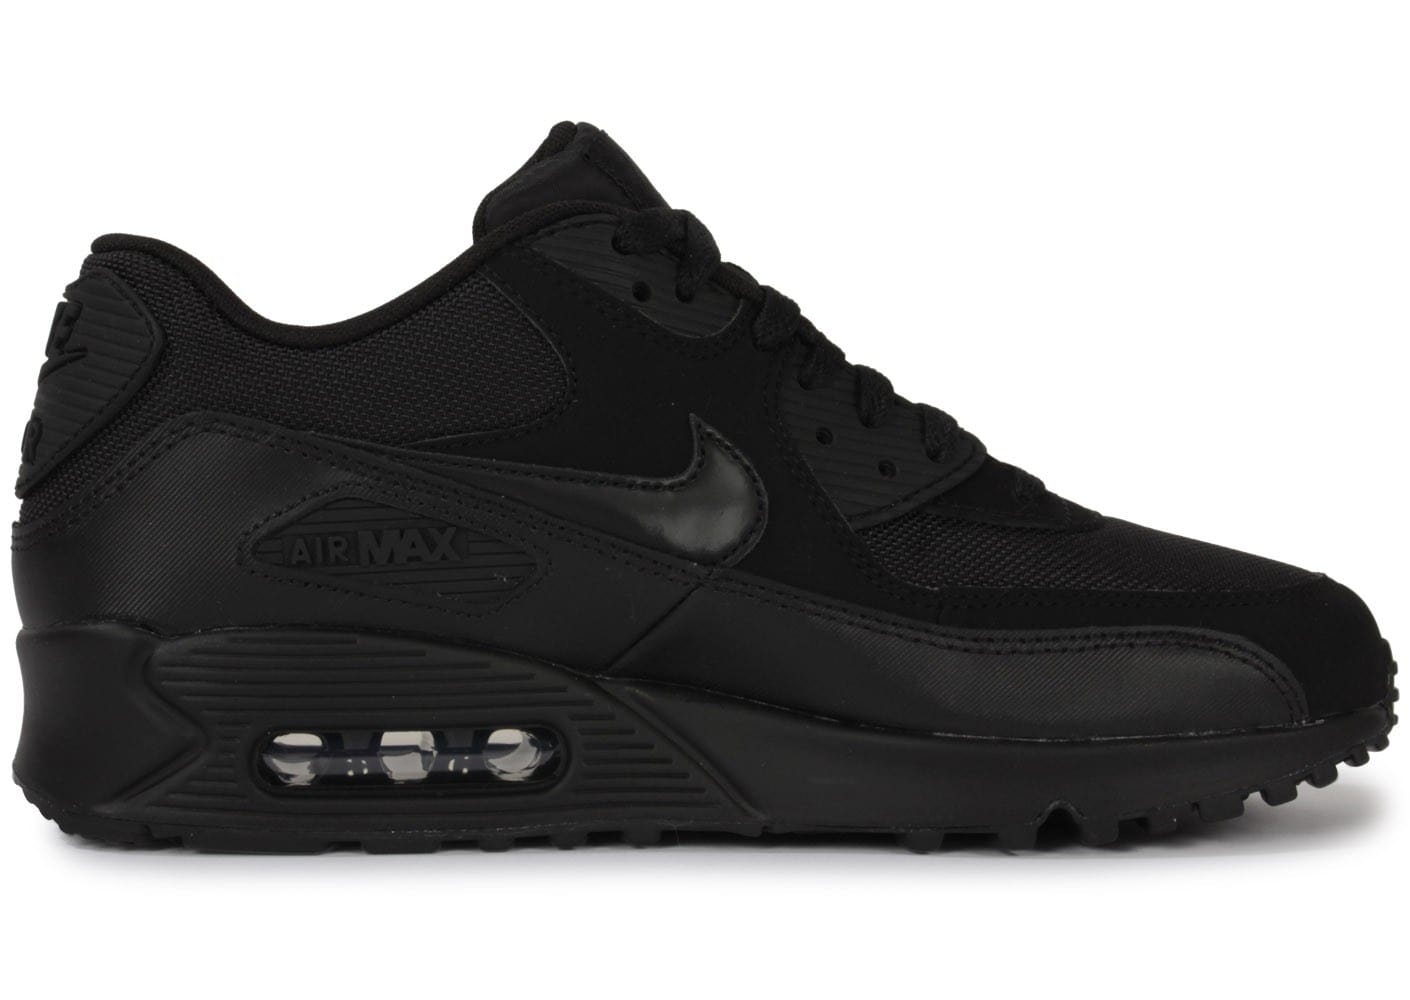 nike air max 90 noire chaussures baskets homme chausport. Black Bedroom Furniture Sets. Home Design Ideas